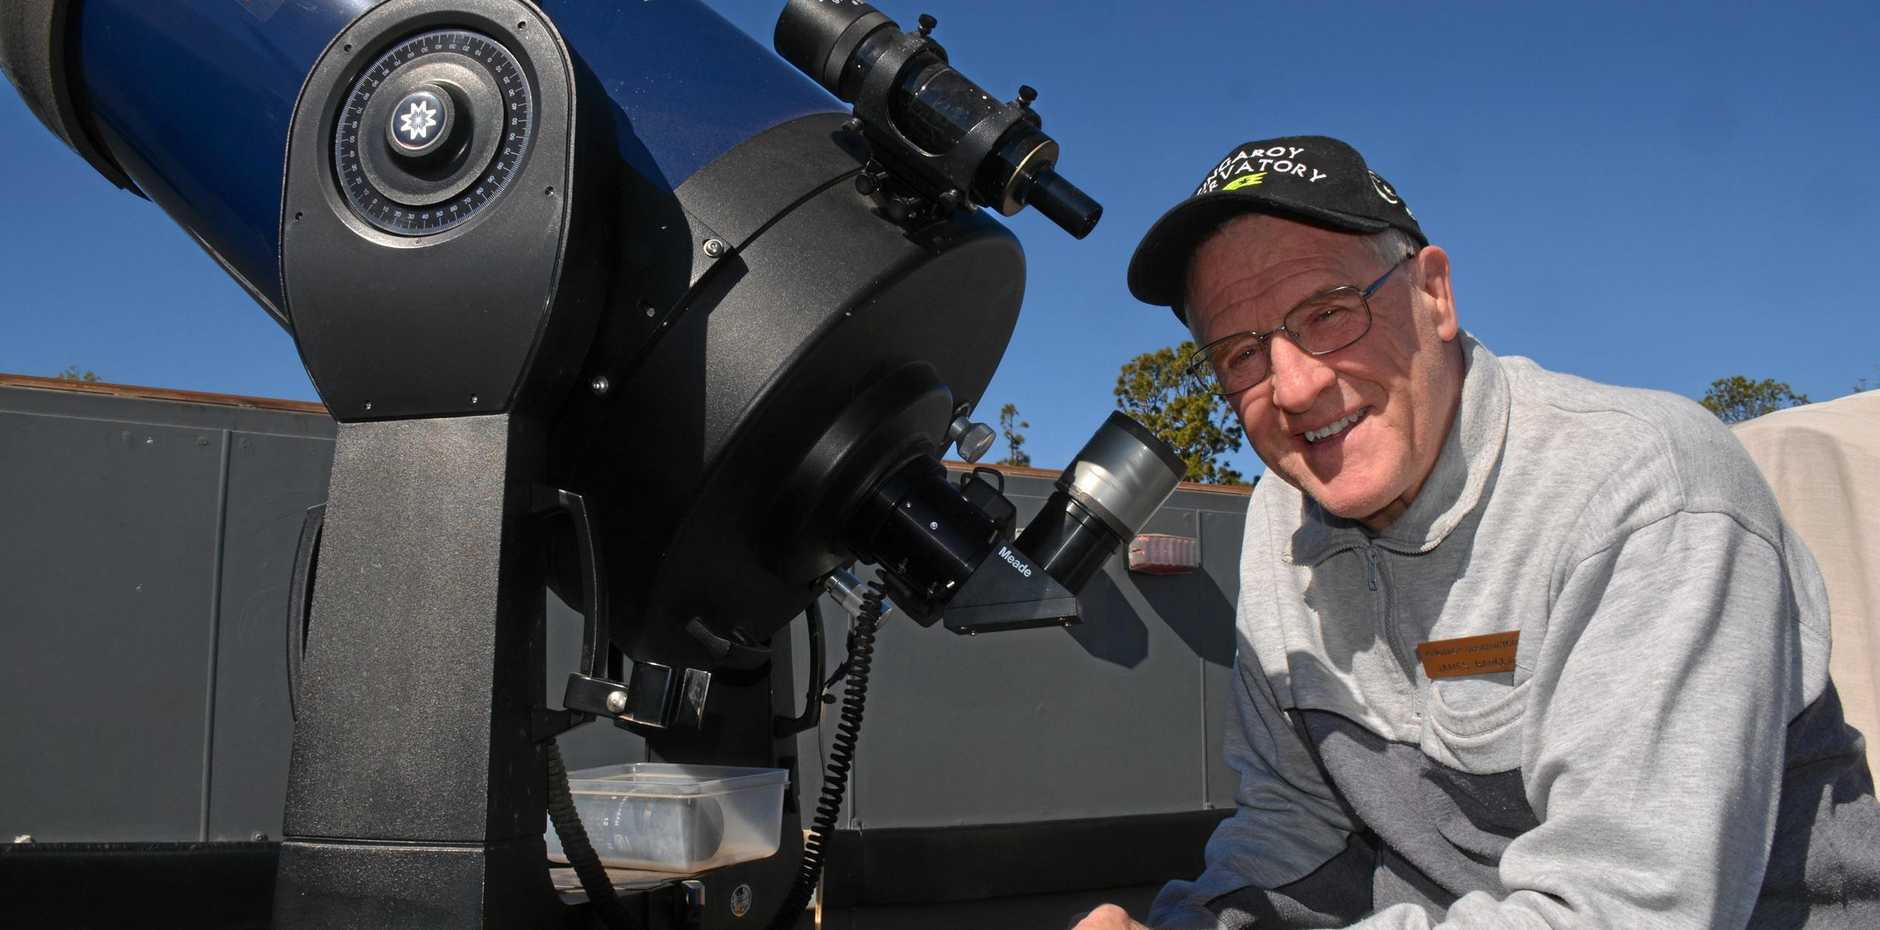 Kingaroy Observatory owner James Barclay will hold special one-hour sessions to spot Mars, Jupiter and Saturn.